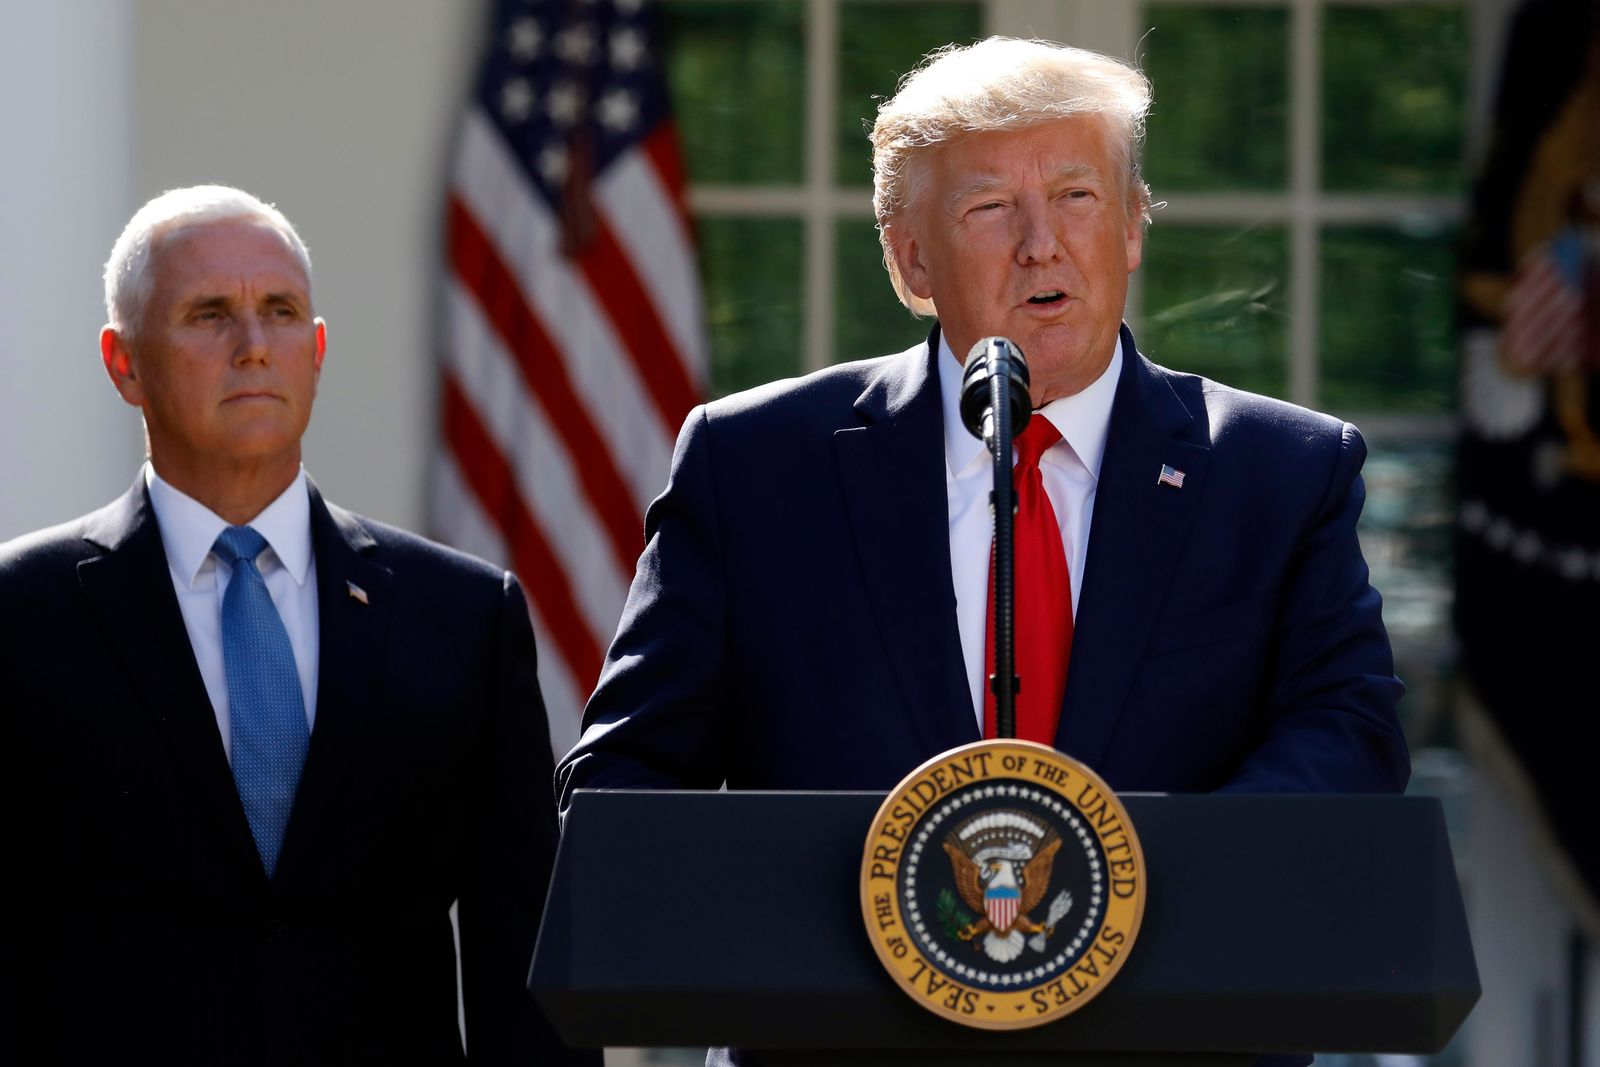 President Donald Trump says he is postponing his weekend trip to Poland and will send Vice President Mike Pence in his place during a event to announce the establishment of the U.S. Space Command in the Rose Garden of the White House in Washington. (AP Photo/Carolyn Kaster)